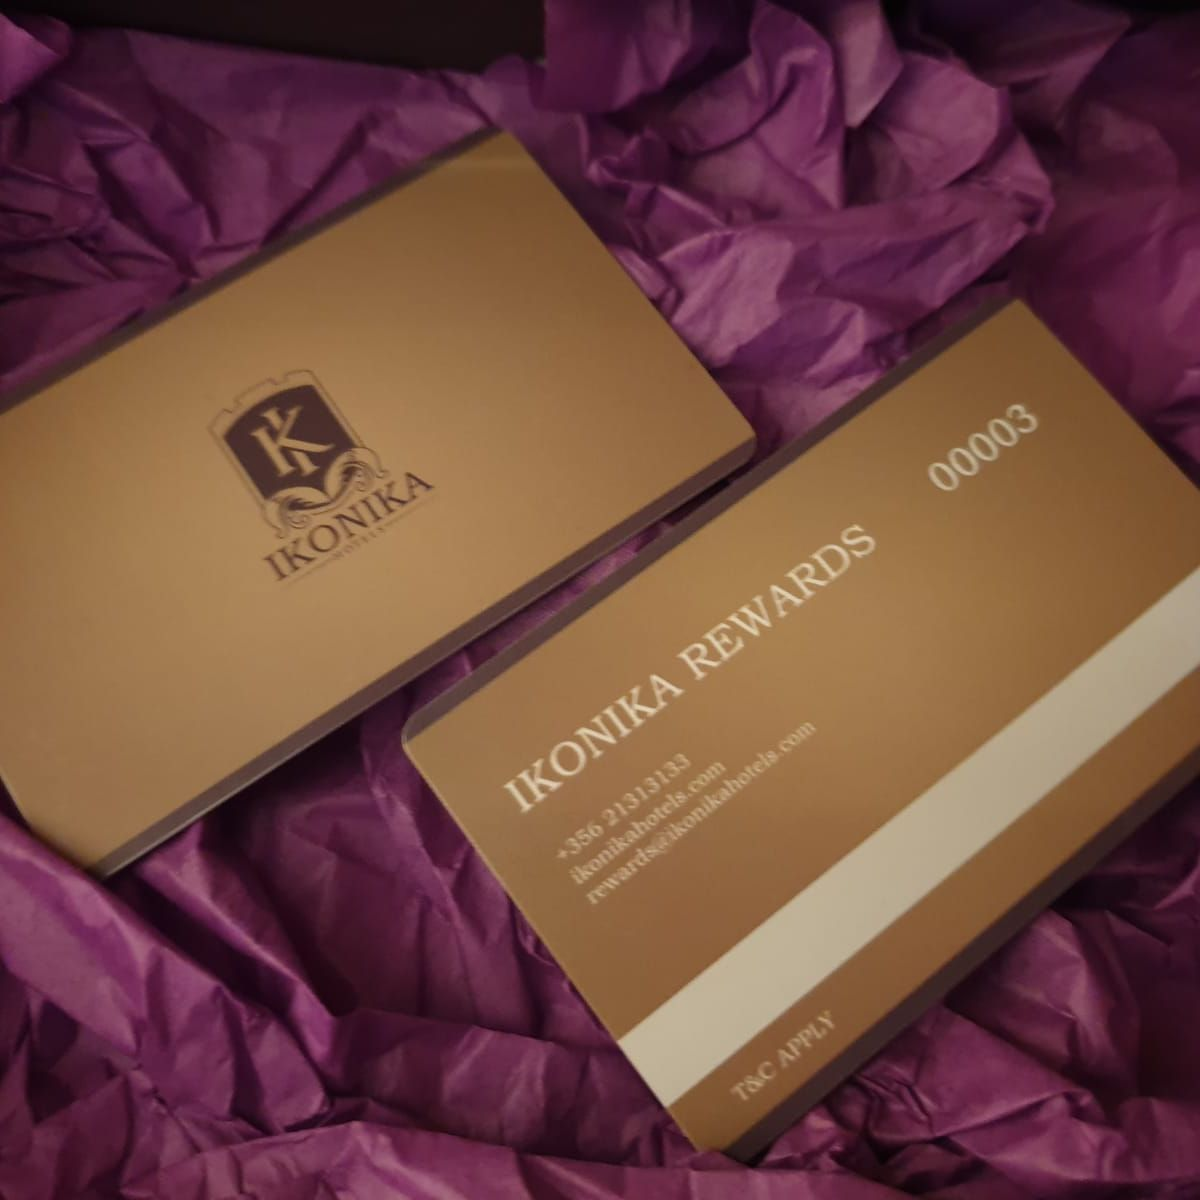 Enrol Now - IKONIKA REWARDS offers exclusive member only benefits and the facility to earn free overnight stays, SPA services and gift vouchers.